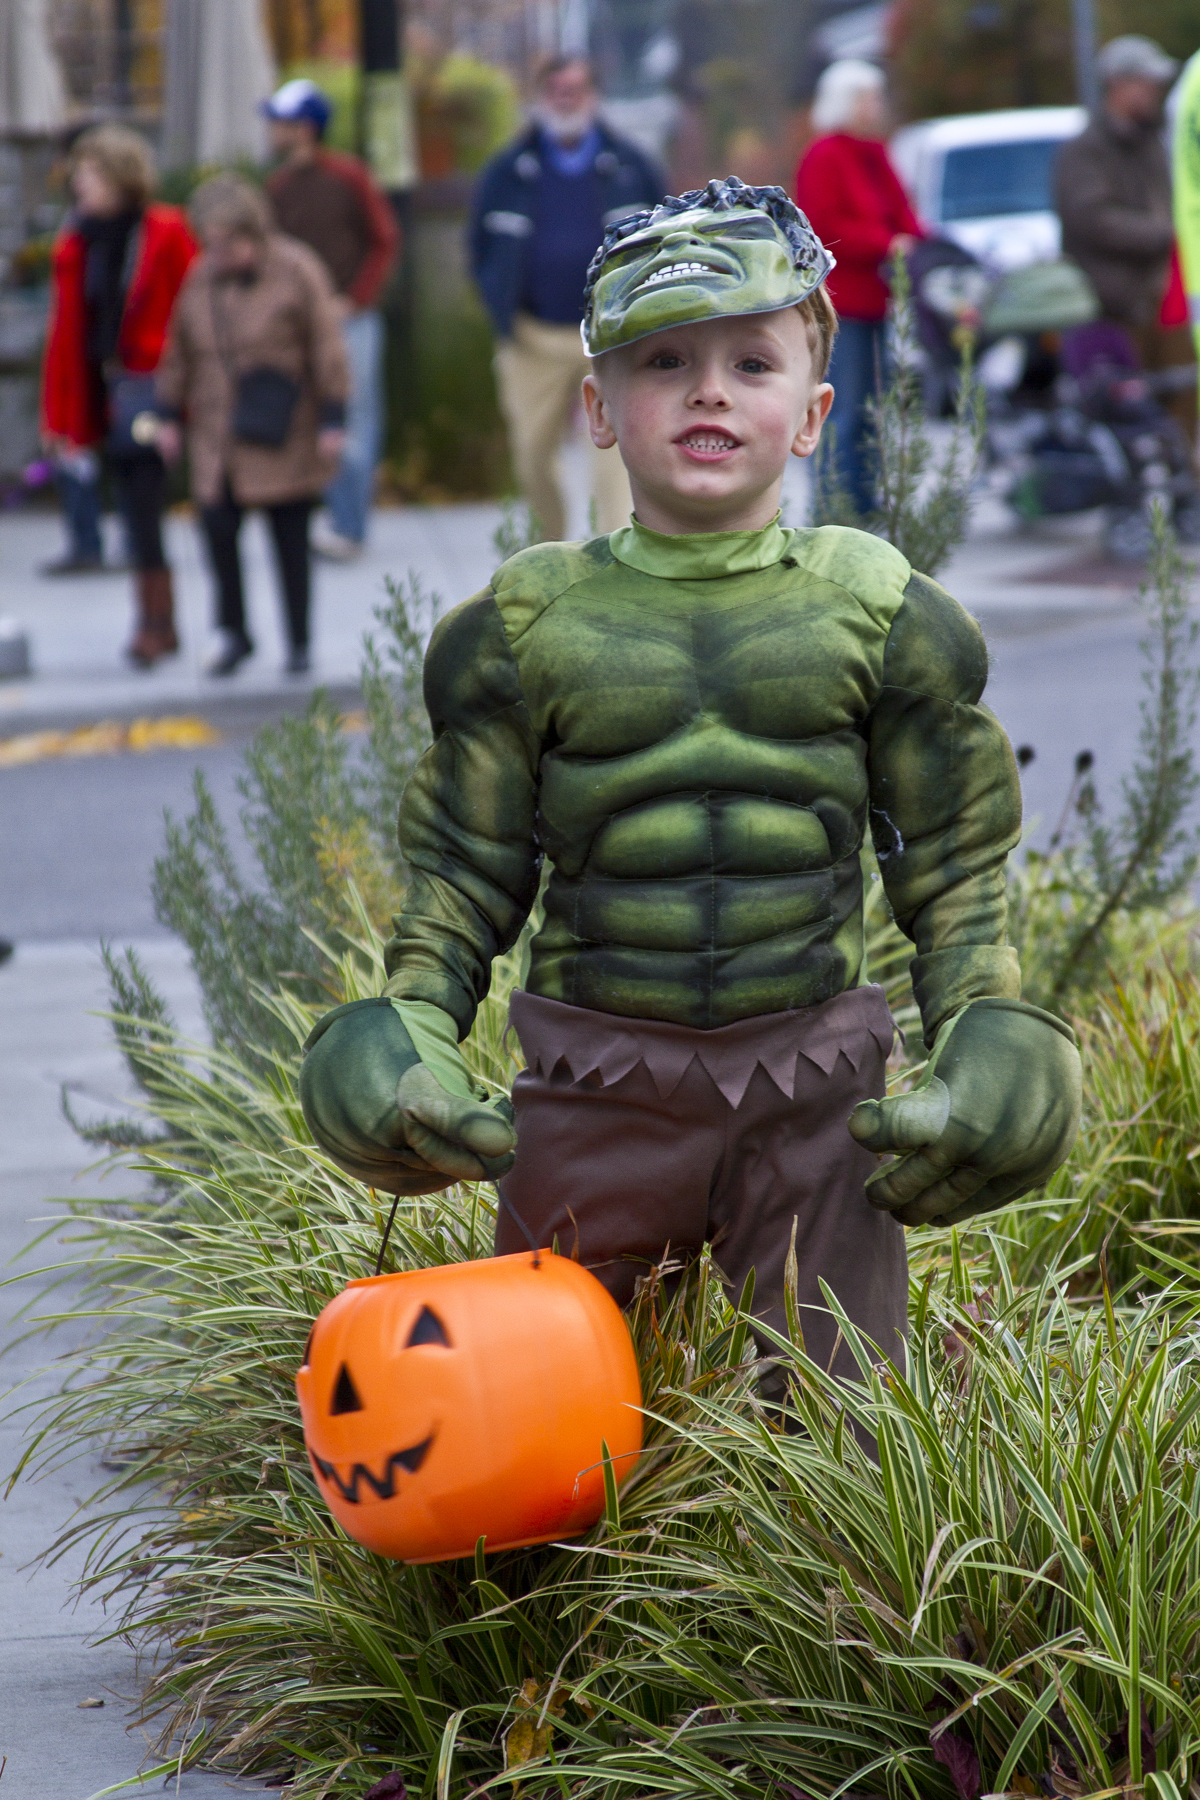 One young trick-or-treater, dressed as the Incredible Hulk, takes a quick break to pose during the 2013 downtown Winslow Trick Or Treat event on Bainbridge Island.